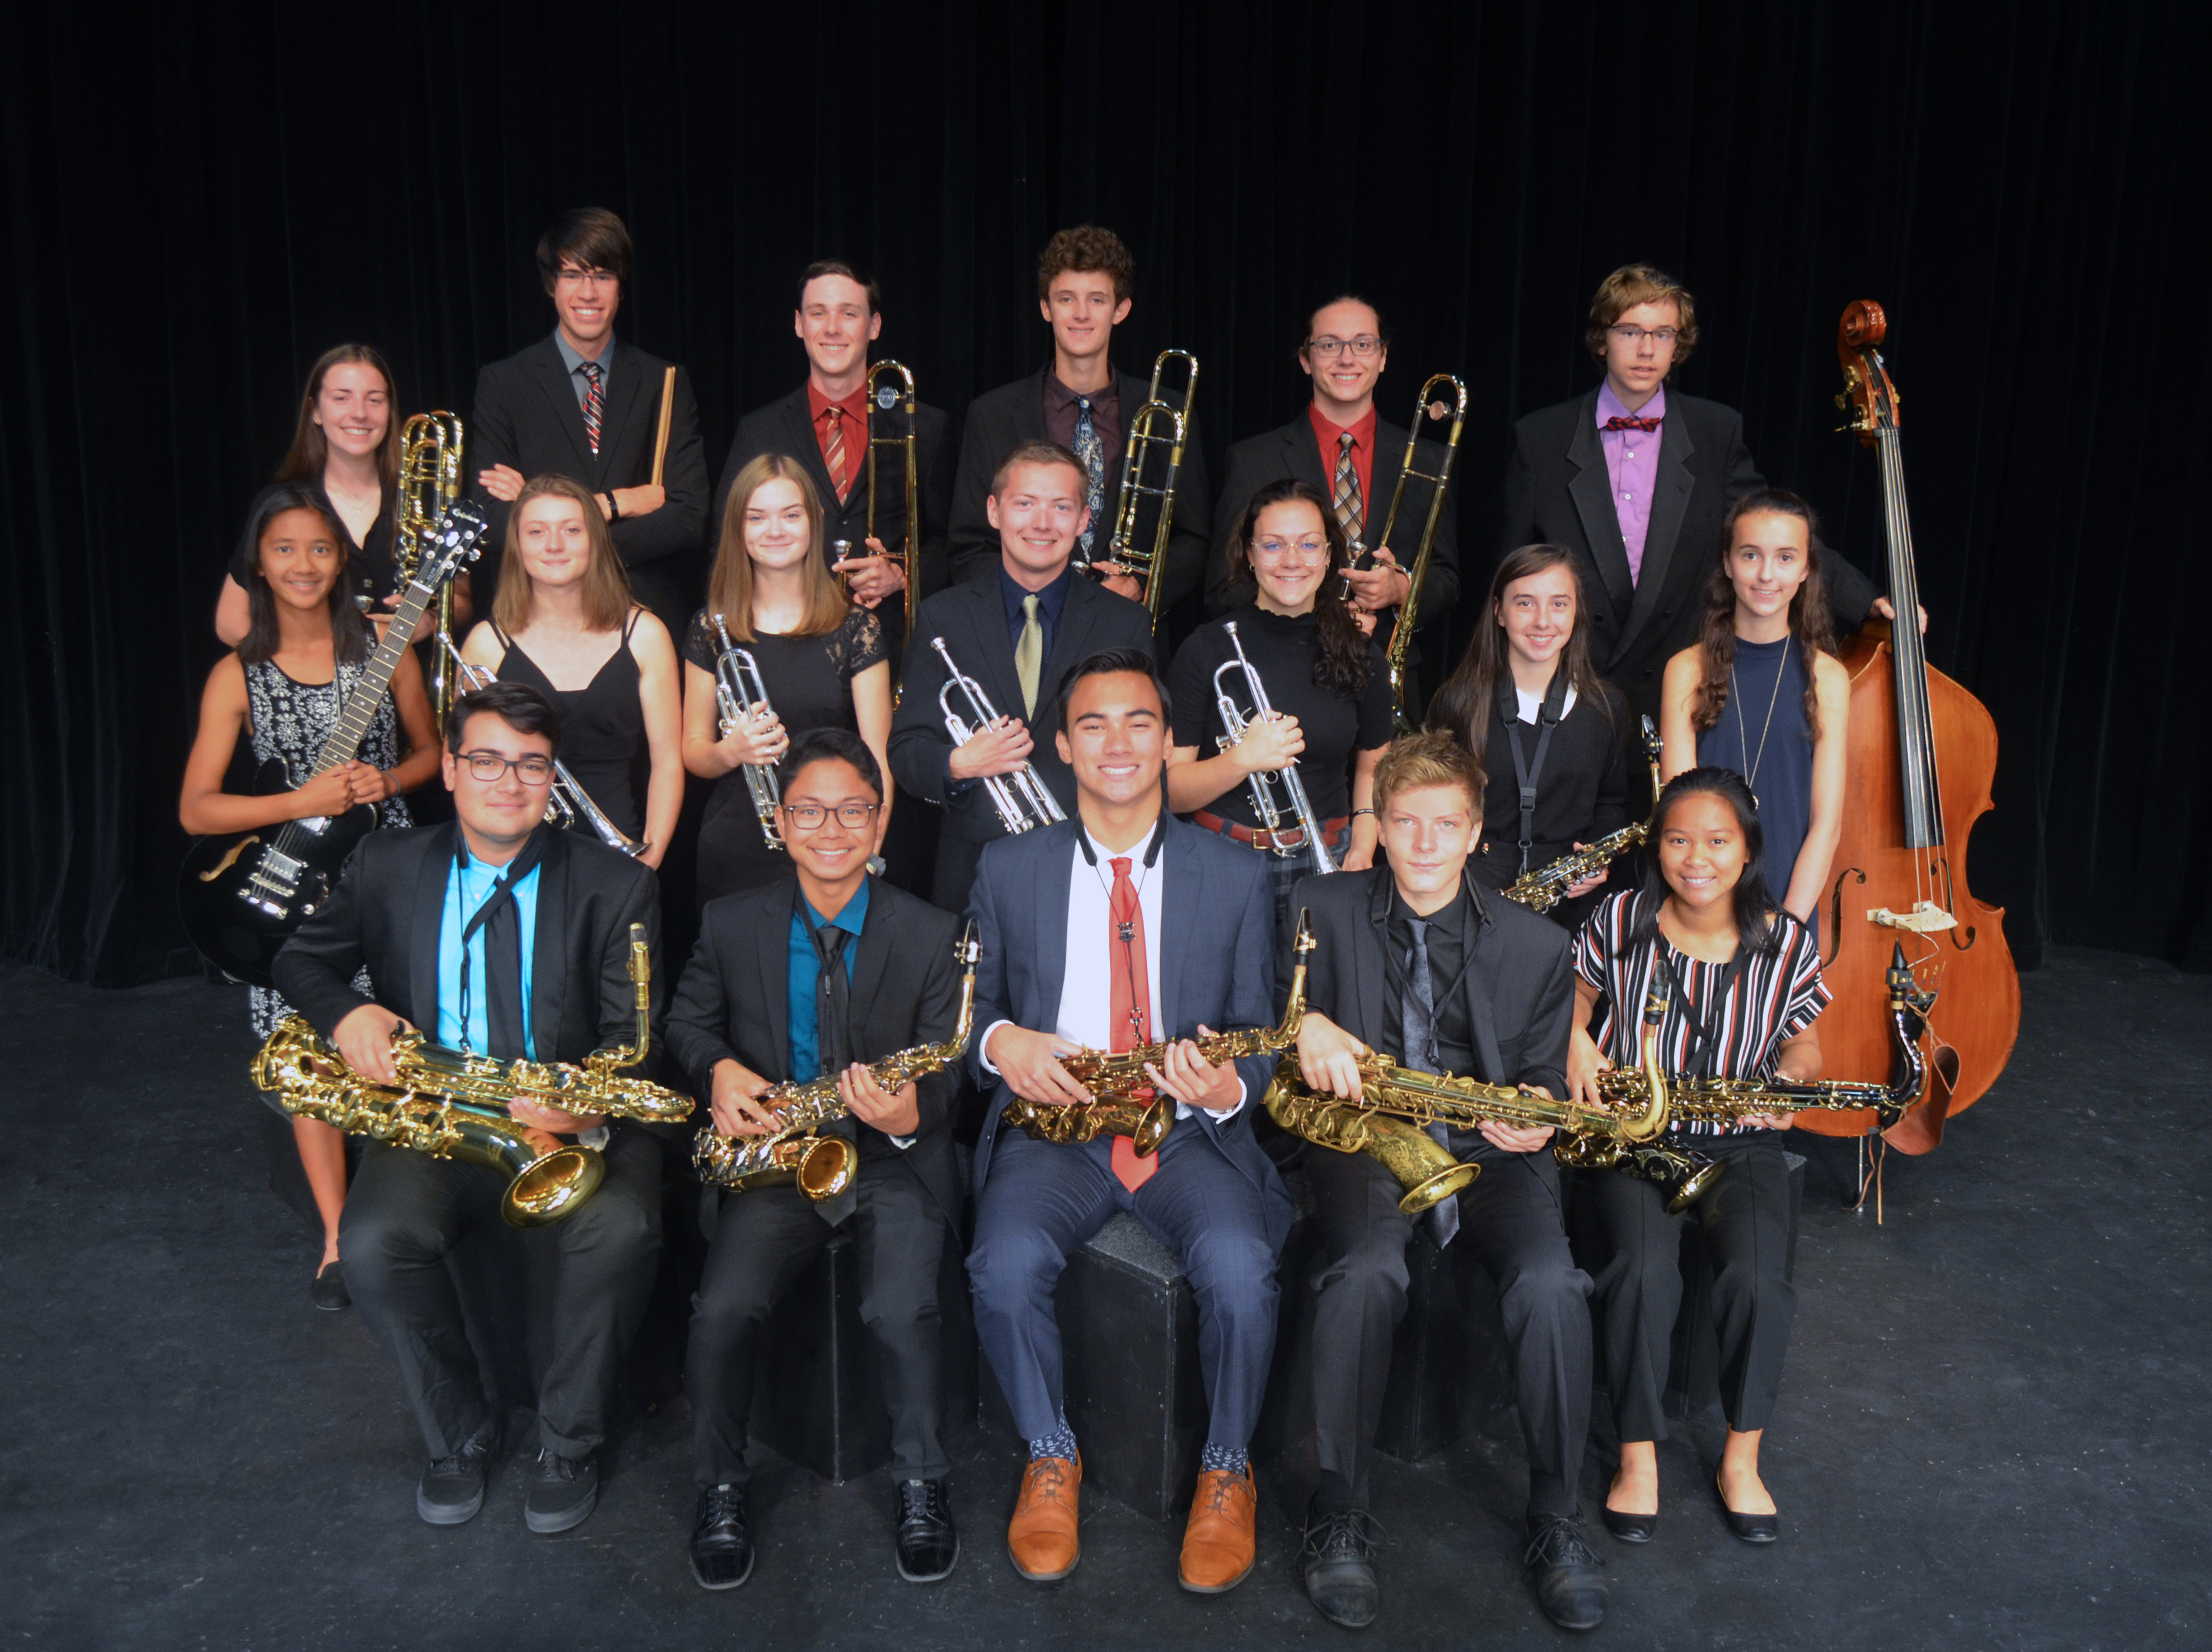 Group photo of jazz ensemble with their instruments